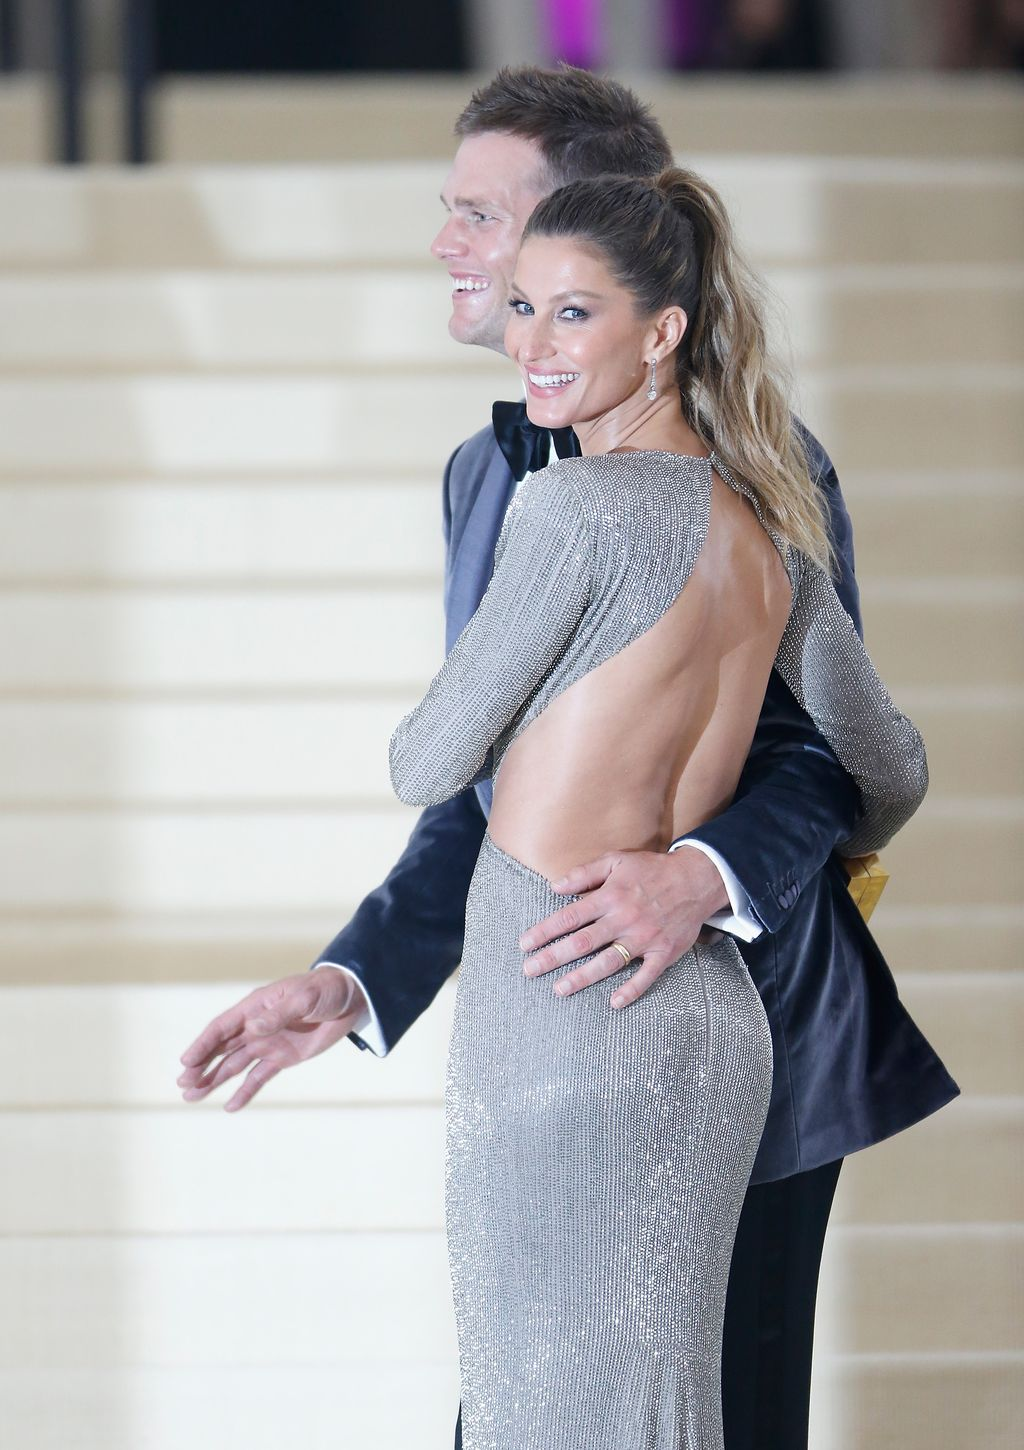 NEW YORK, NY - MAY 01:  Gisele Bundchen attends the